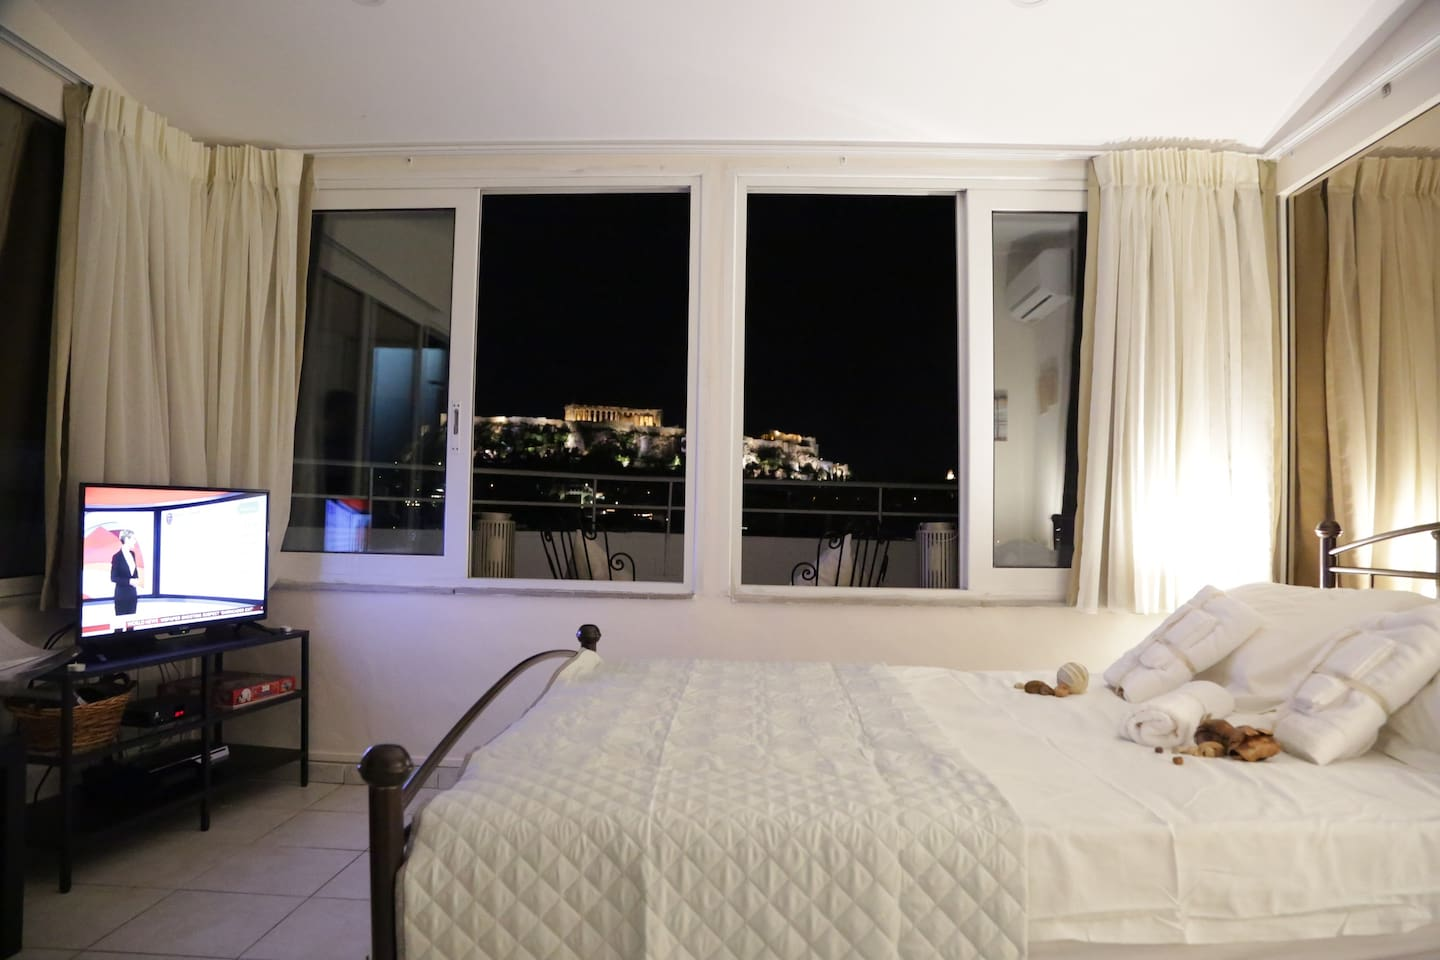 The main room has an amazing view of Akropolis, especially at night. You can relax and contemplate the Parthenon.